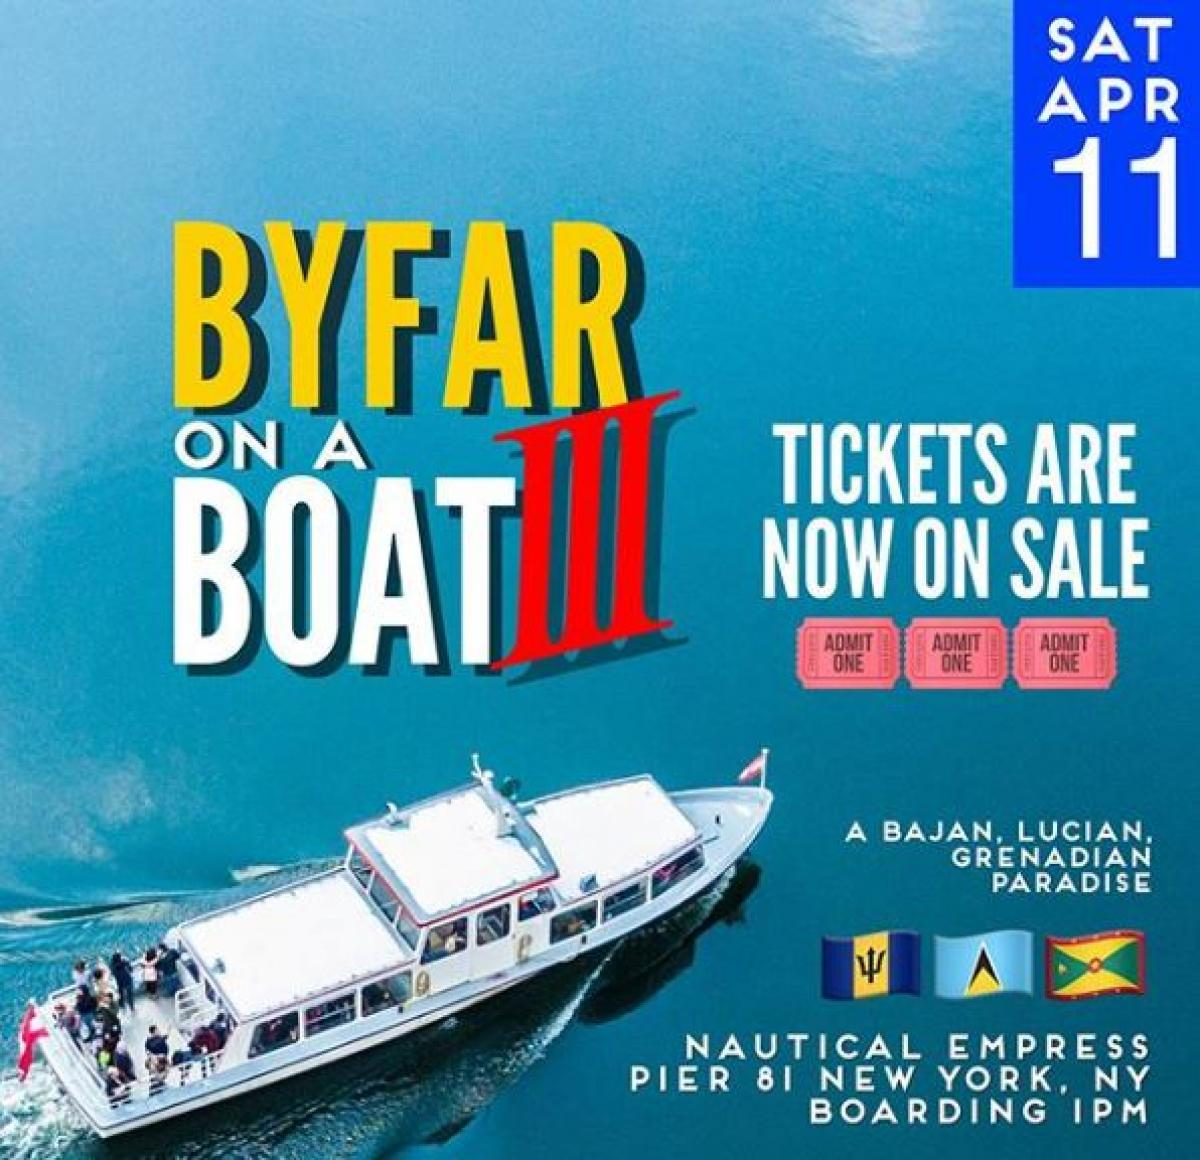 By Far on a Boat 3 flyer or graphic.